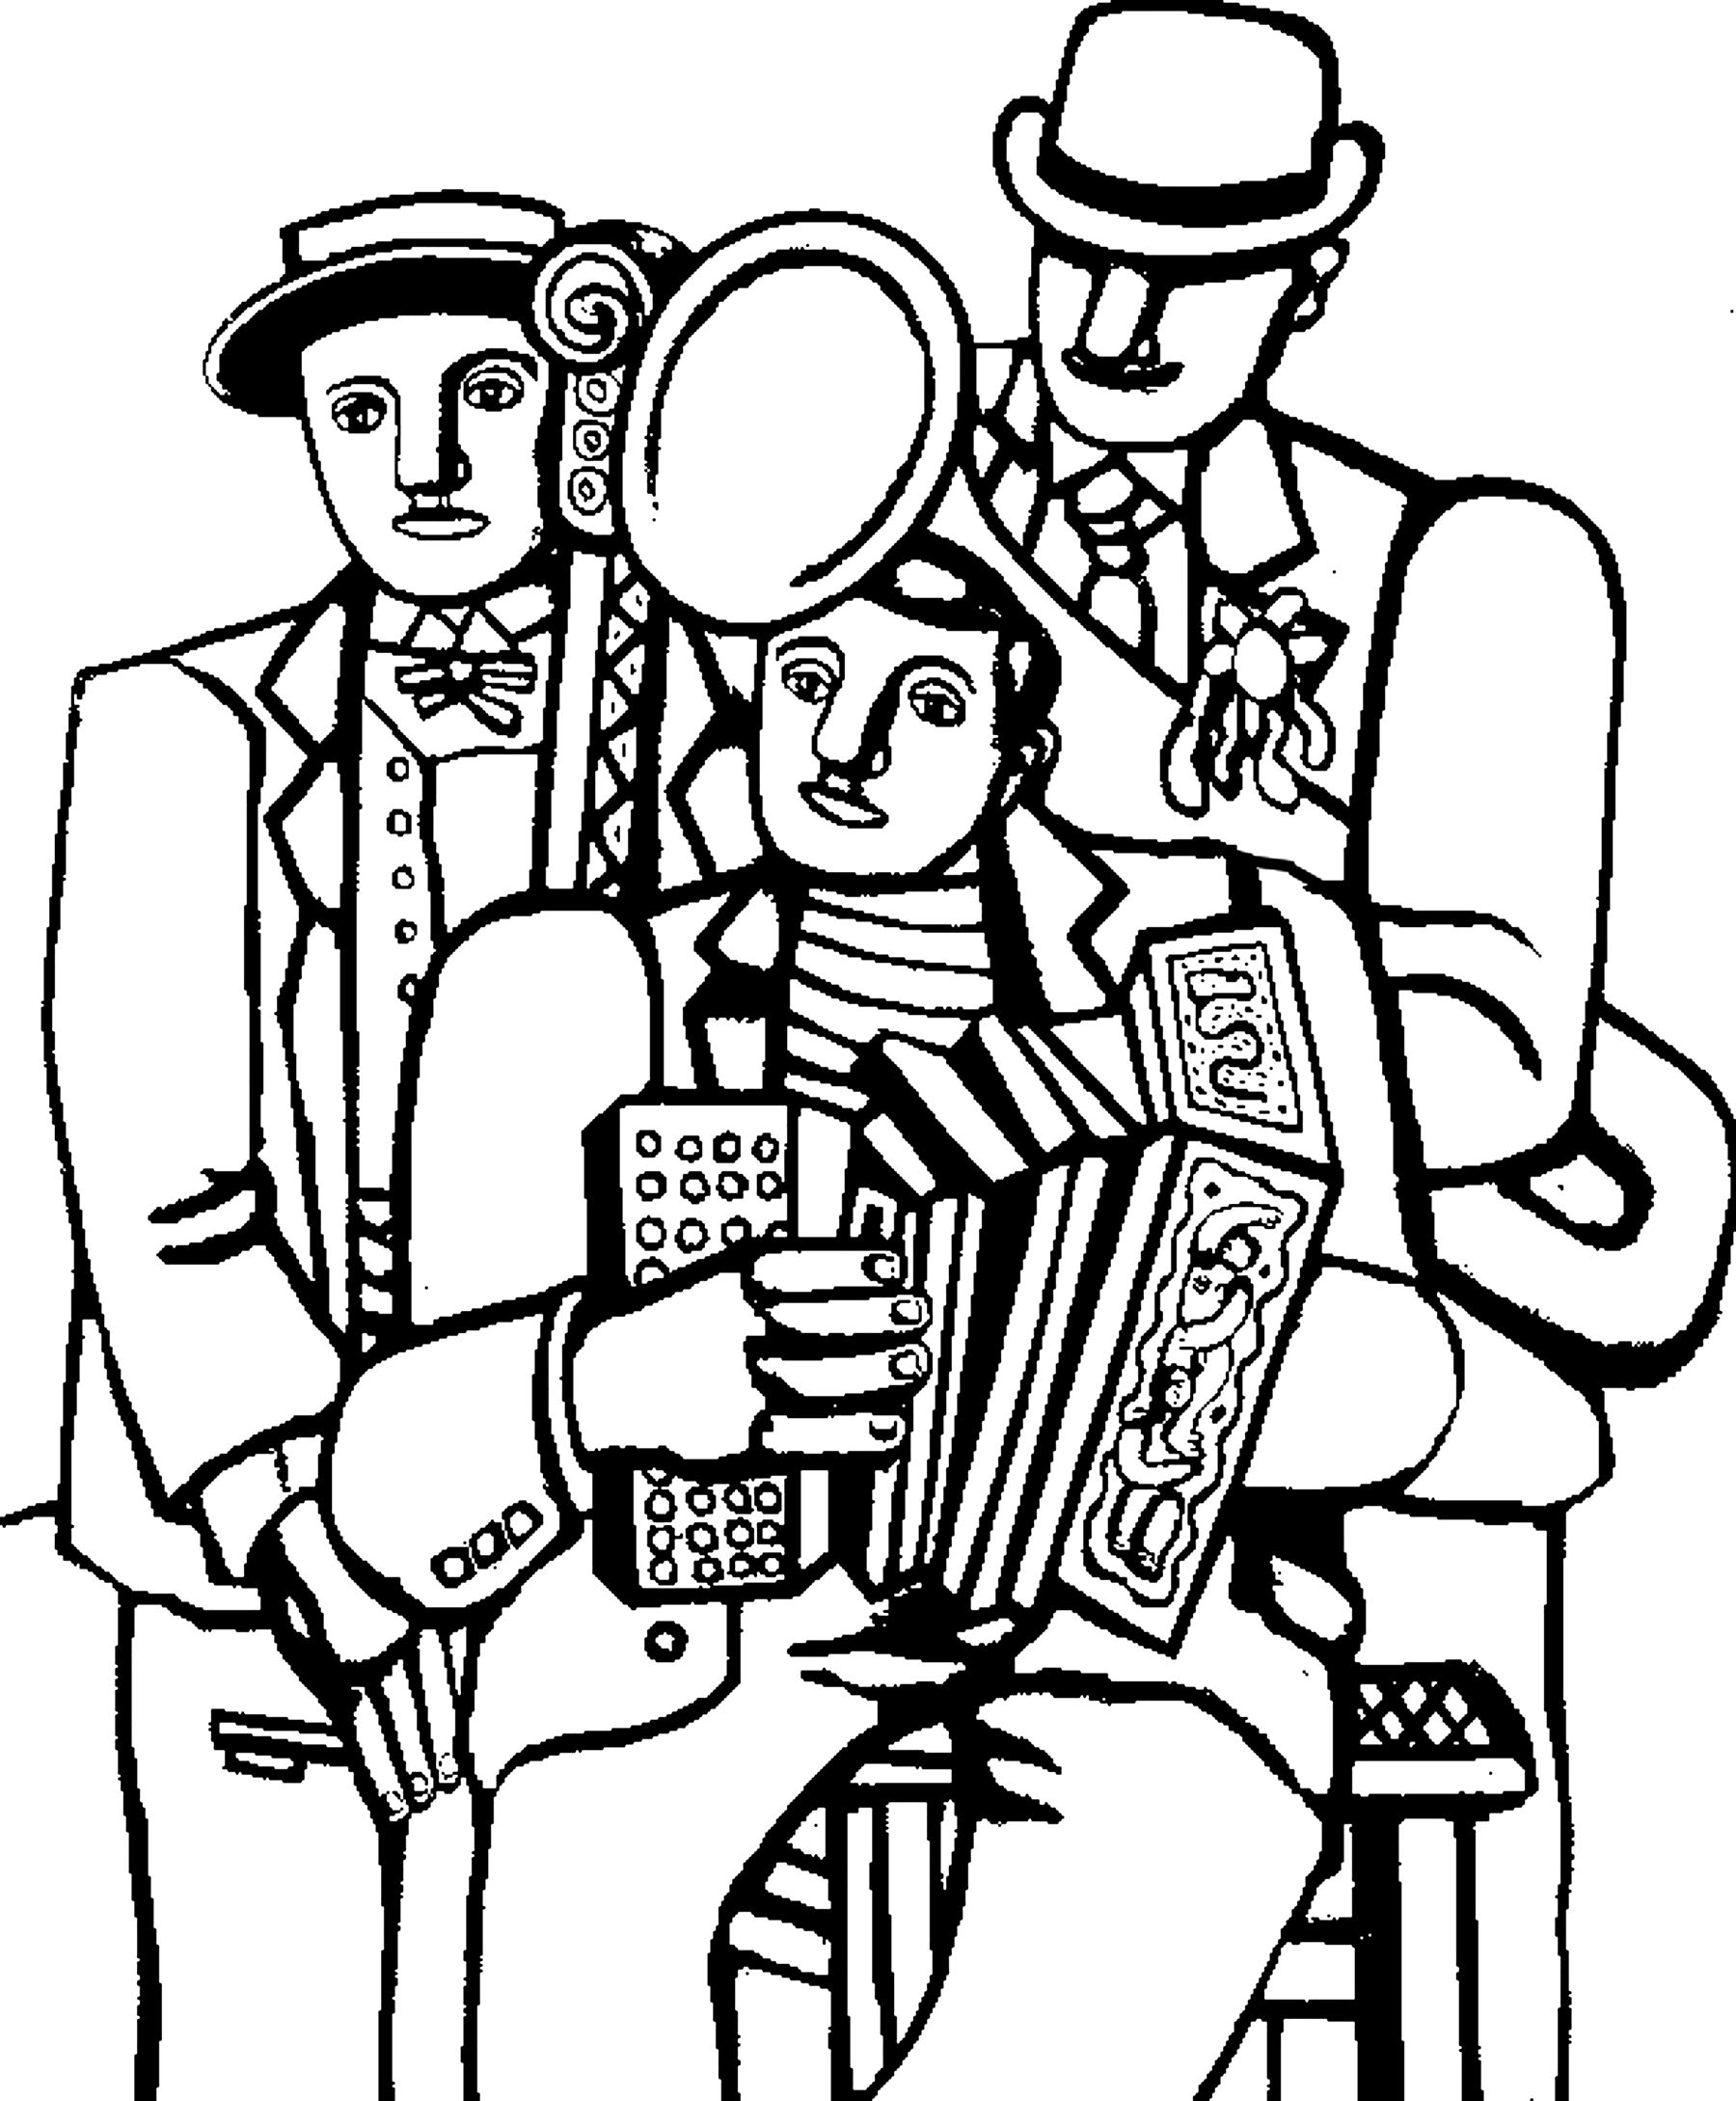 Fernand leger three musicians - Image with : Music, Fernand Leger